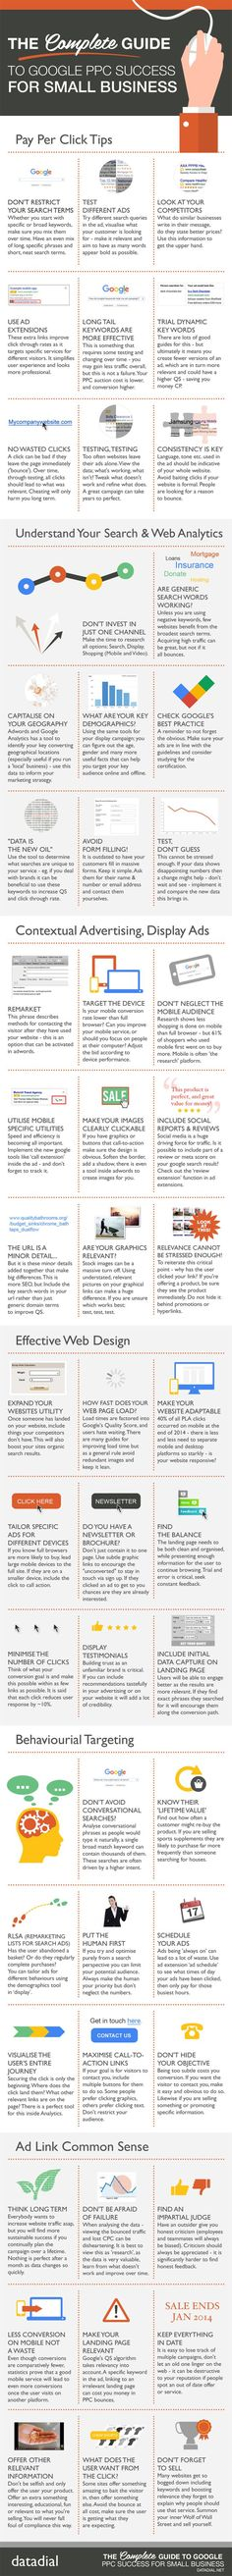 http://social-media-strategy-template.blogspot.com/ 53 Steps to Google Adwords Success: The Ultimate Pay per Click Guide #Infographic